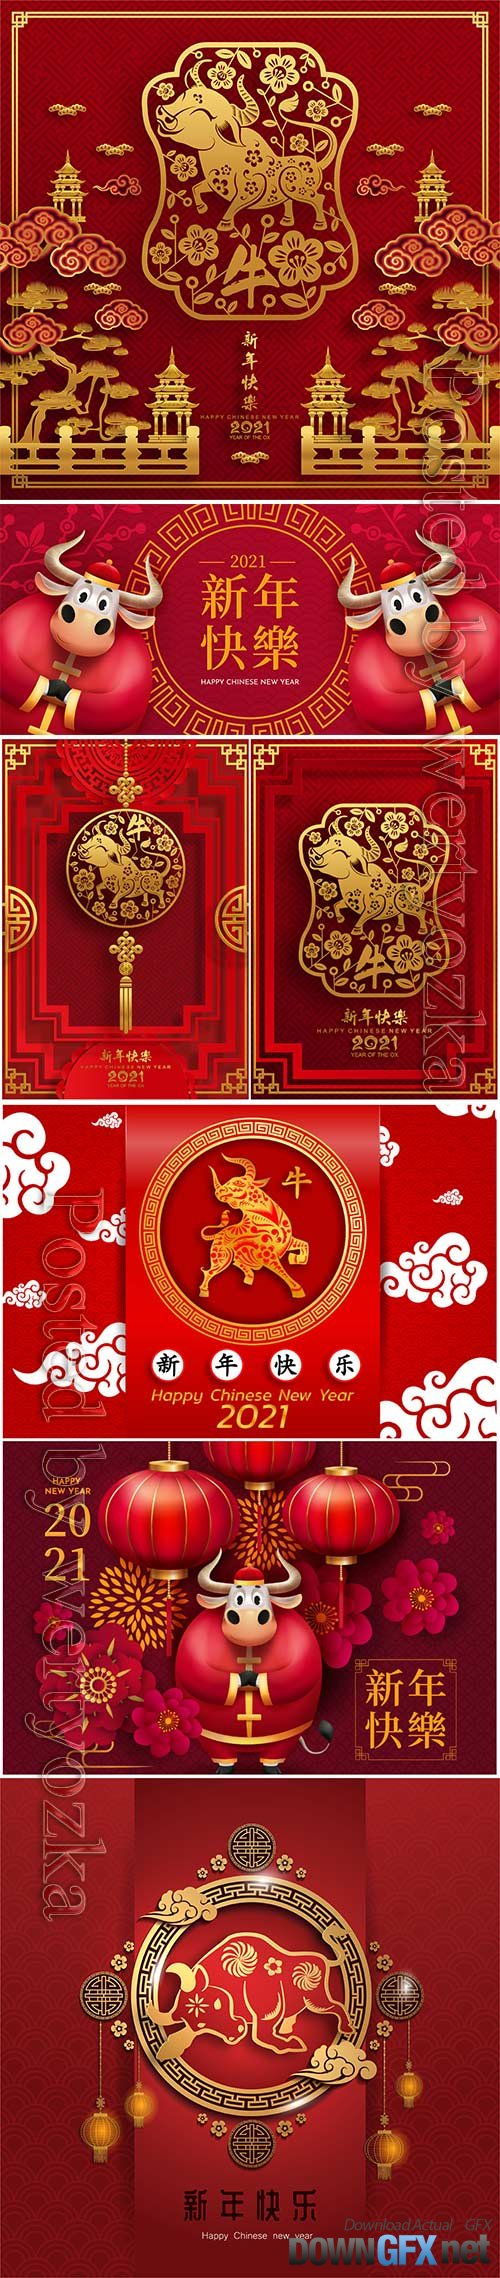 Happy chinese new year 2021 vector